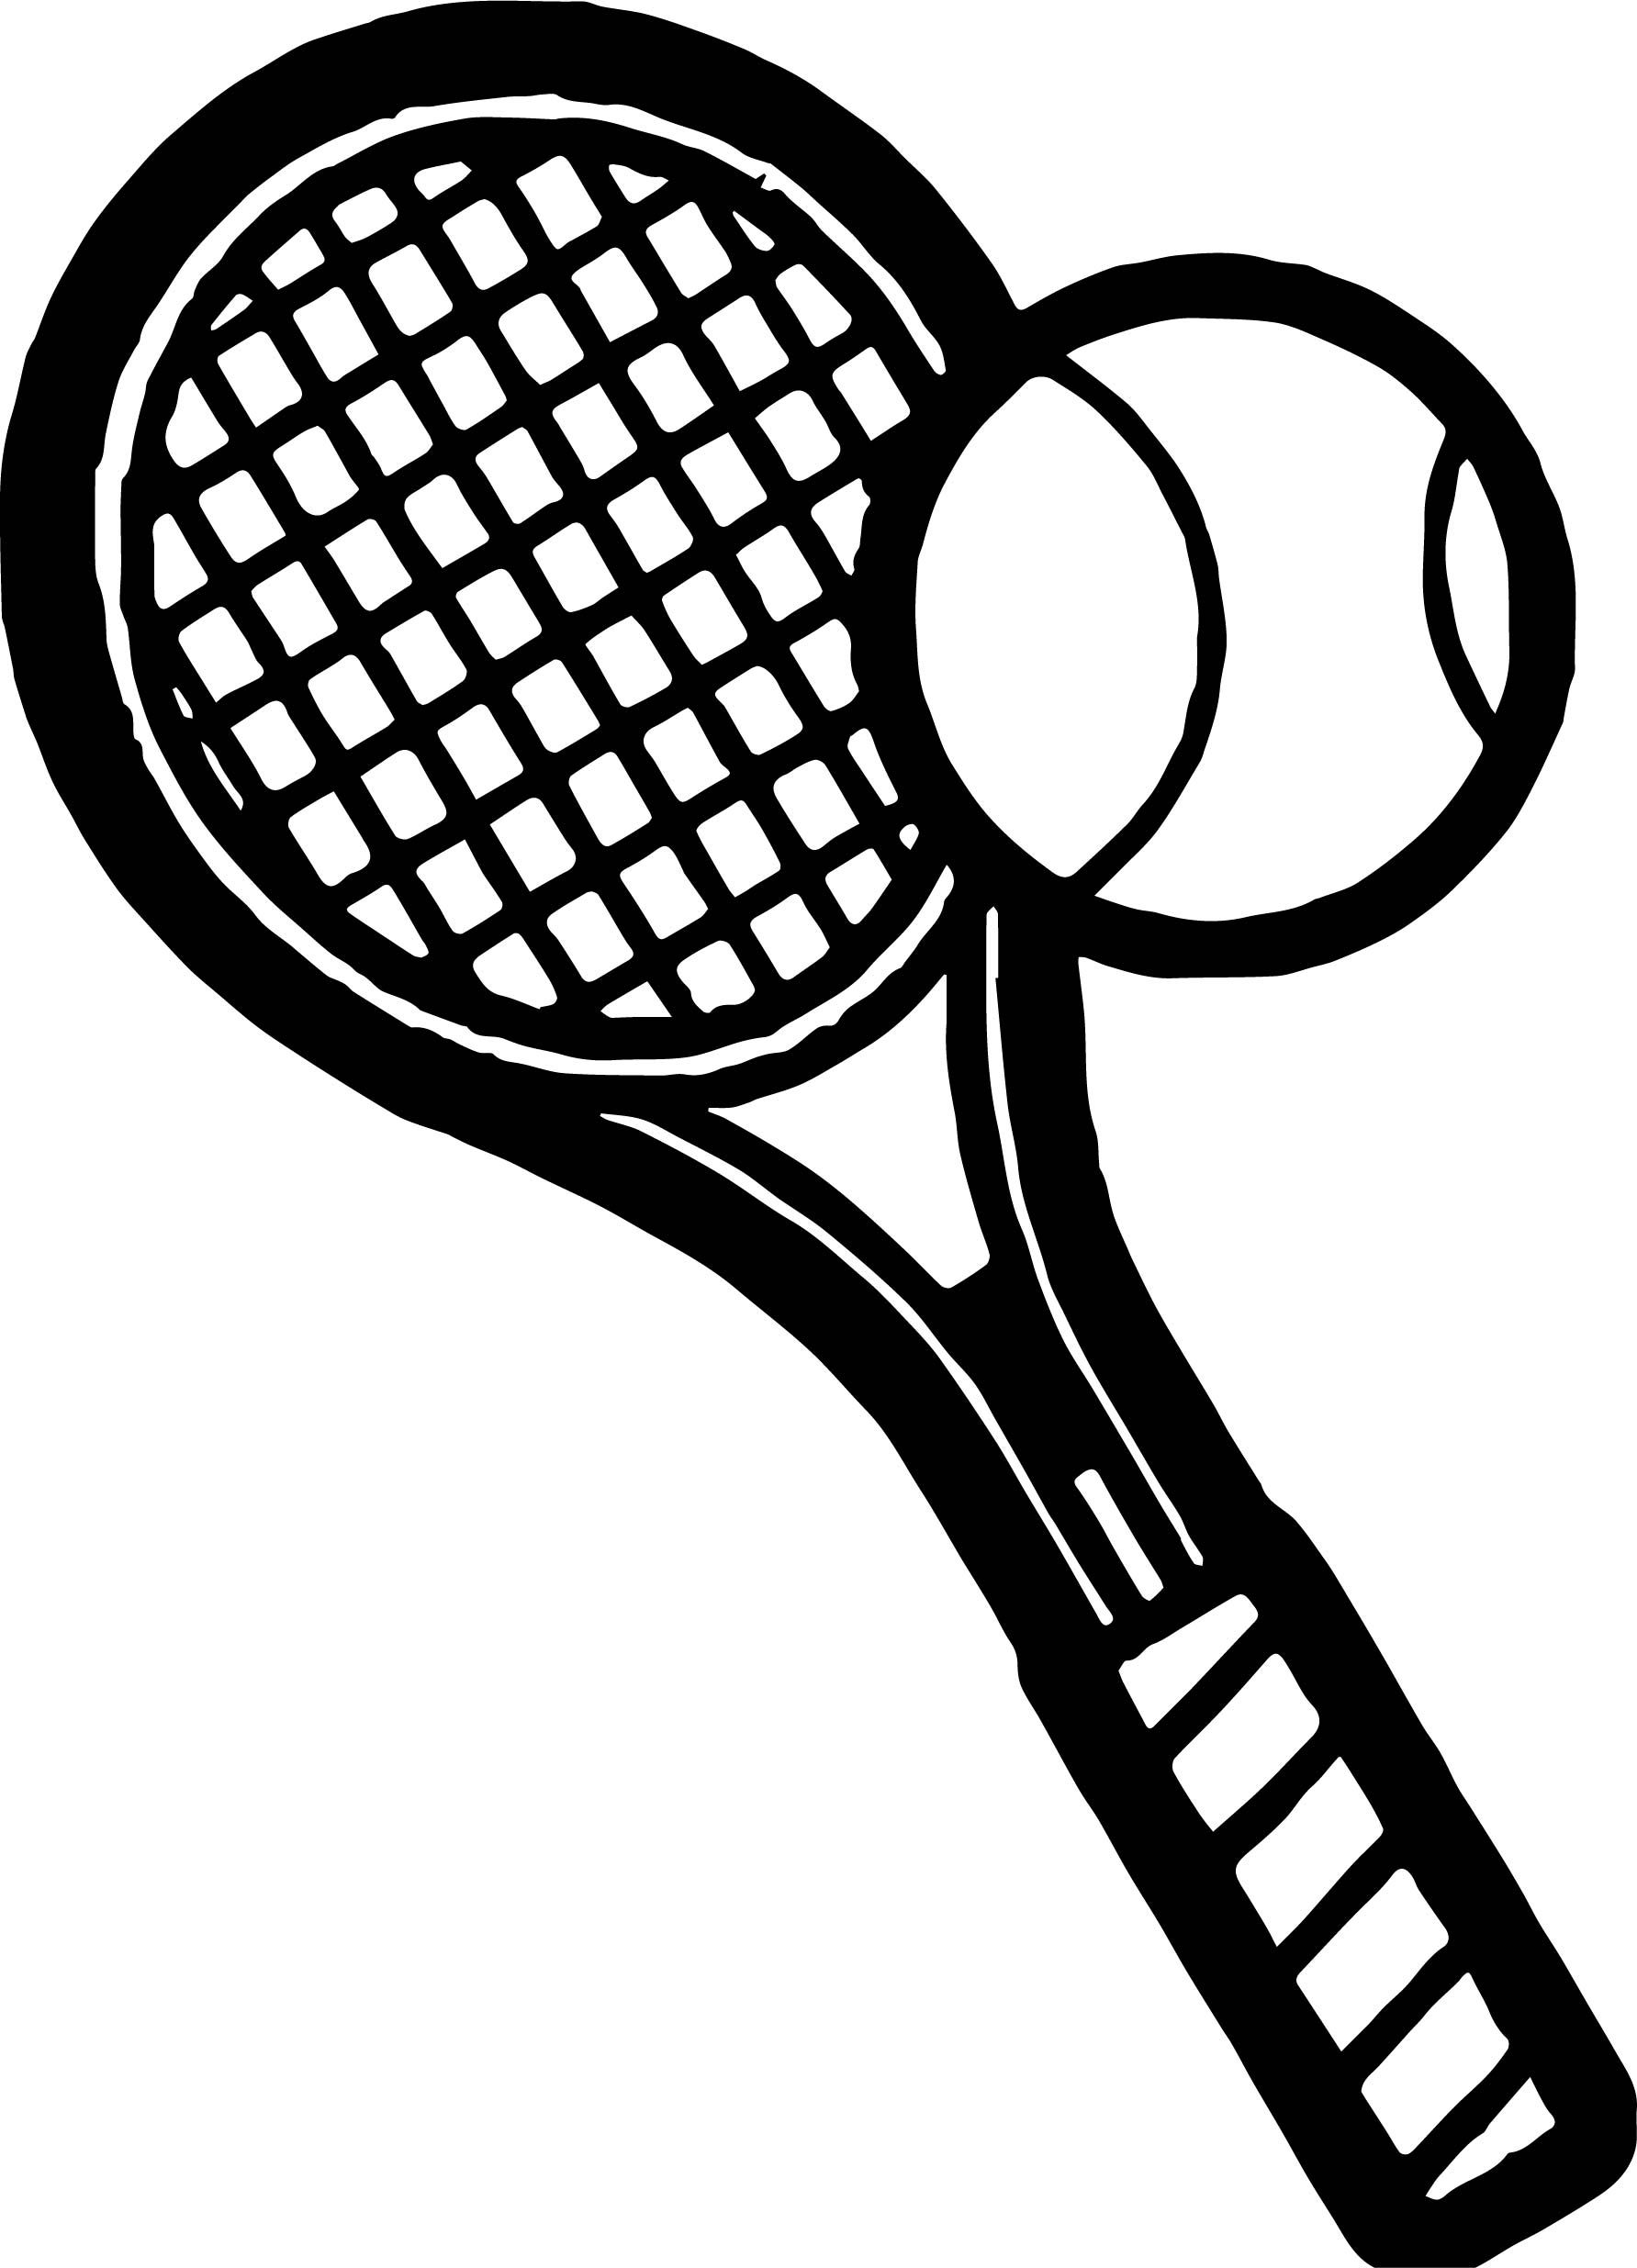 Awesome Bold Tennis Racket Coloring Page Tennis Racket Rackets Coloring Pages